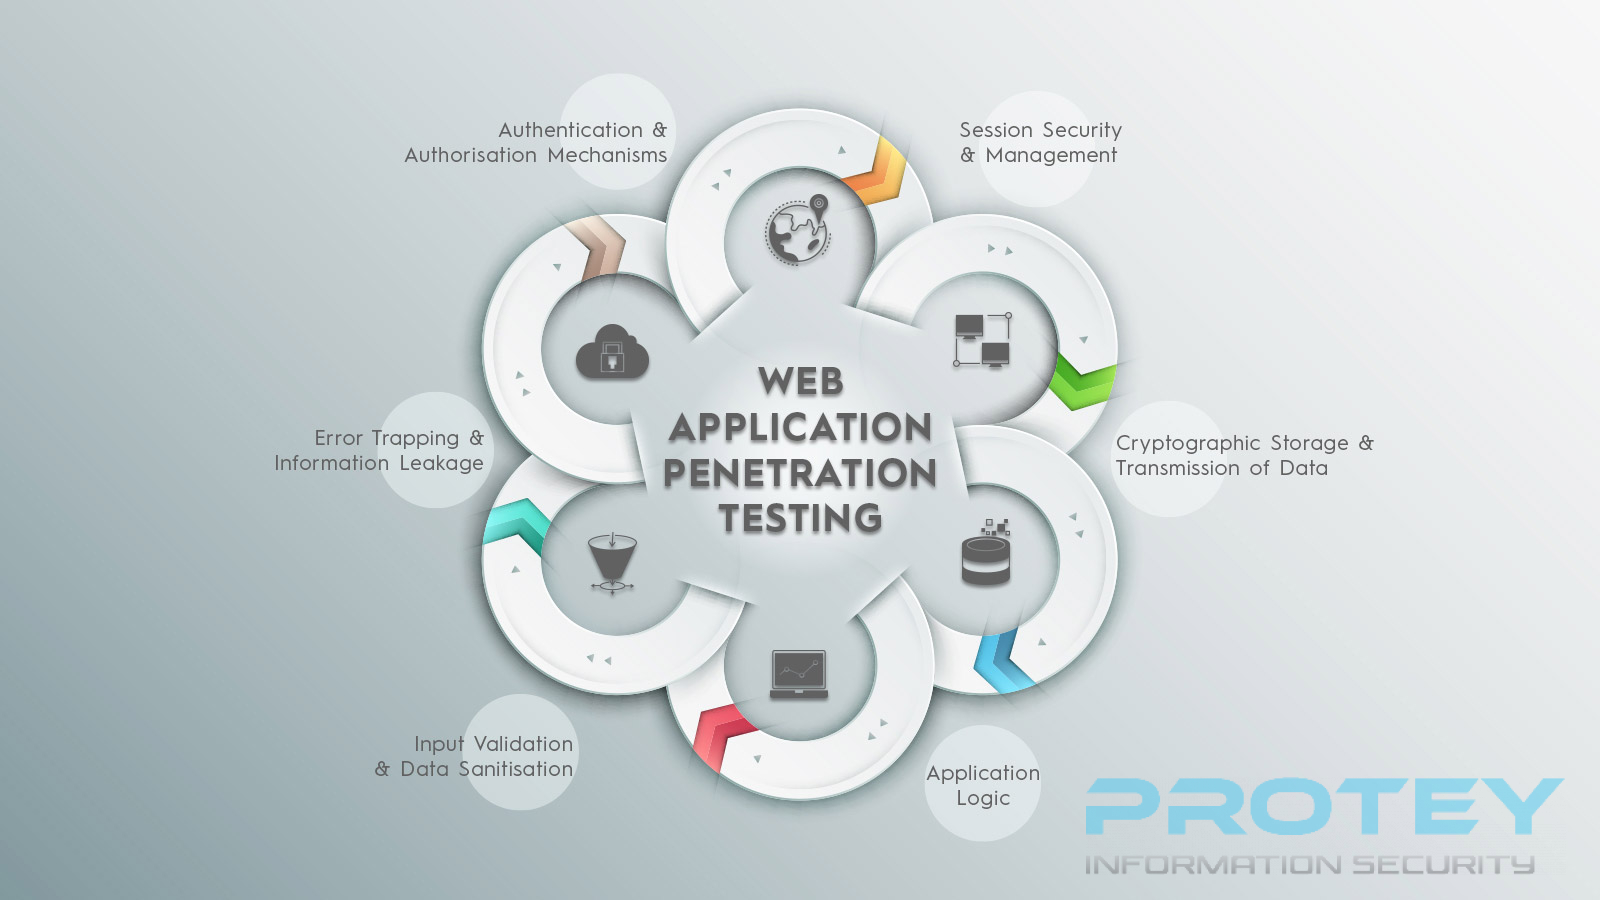 Web-application-penetration-testing.jpg